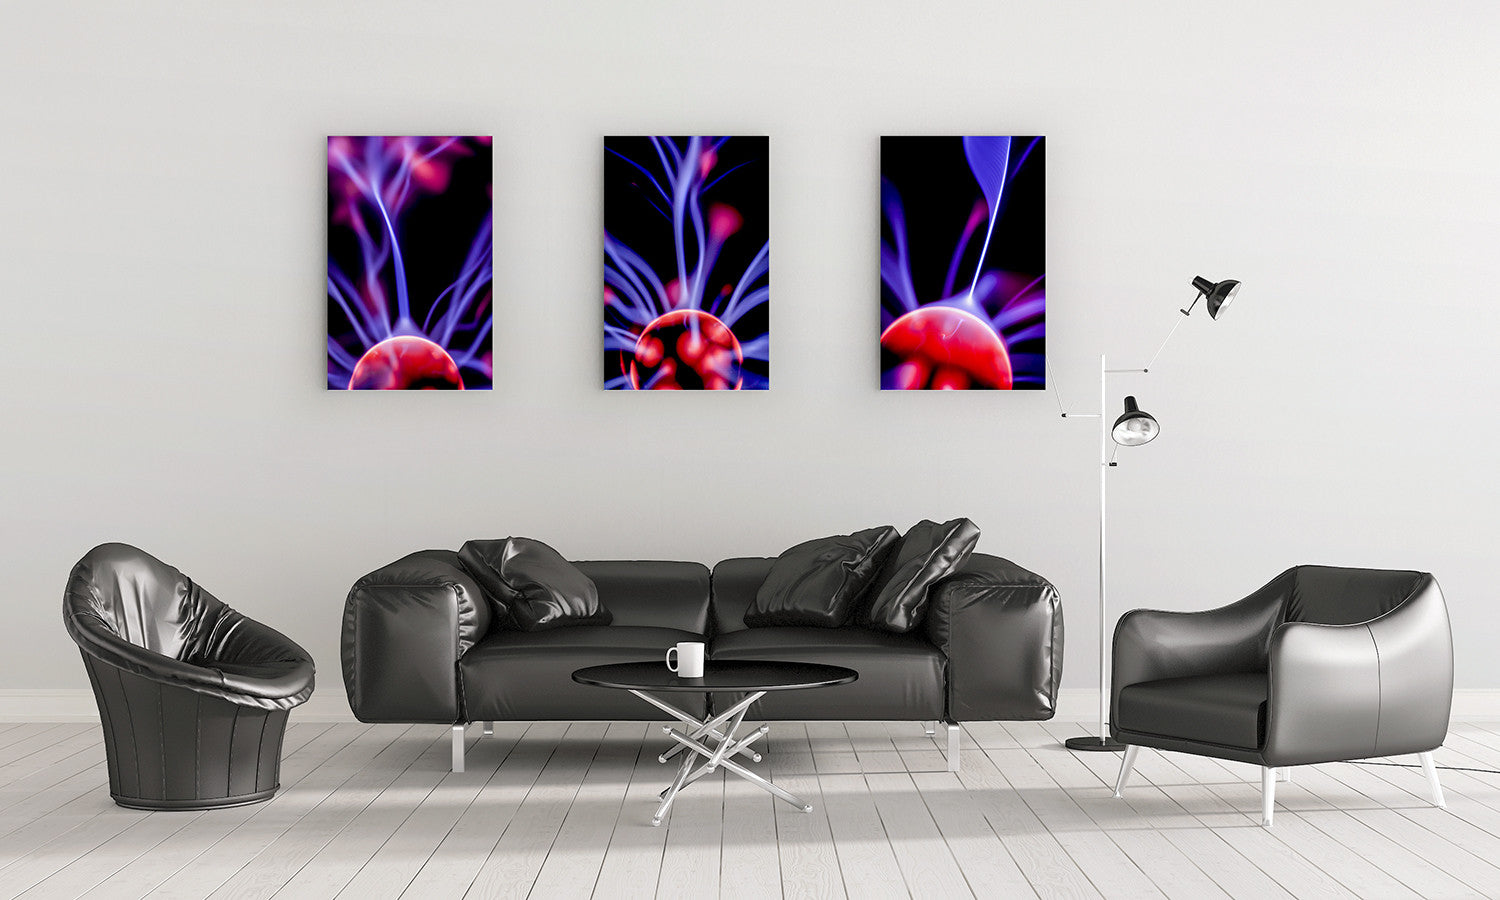 Plasma Wall Canvas 3 of 3